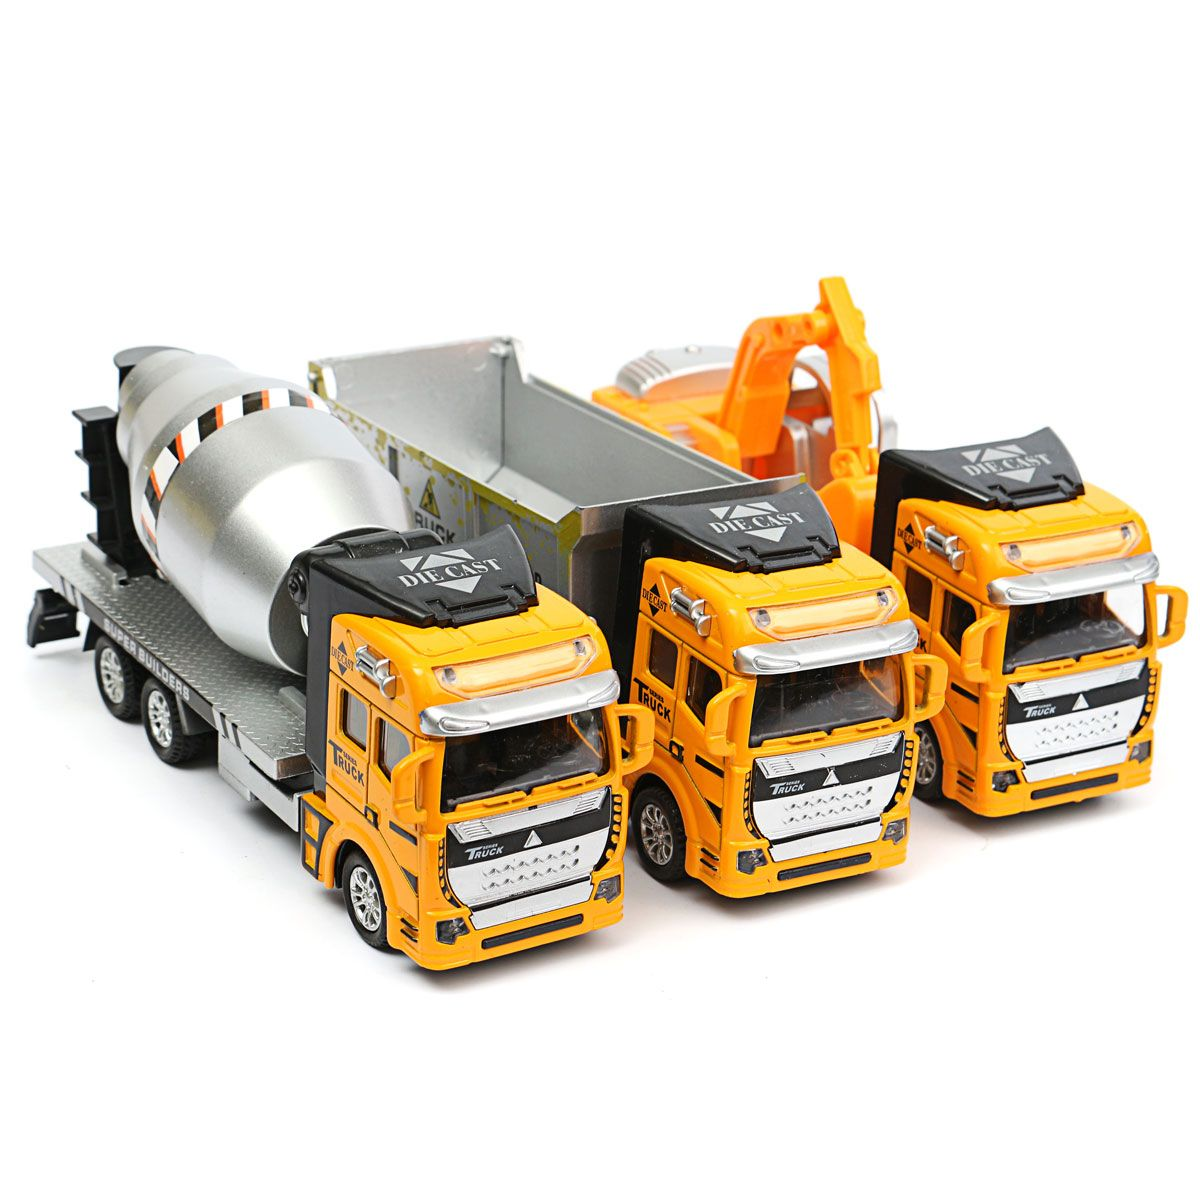 Children Model Pullback Digger Excavator Construction Vehicle Trucks Vans Toy